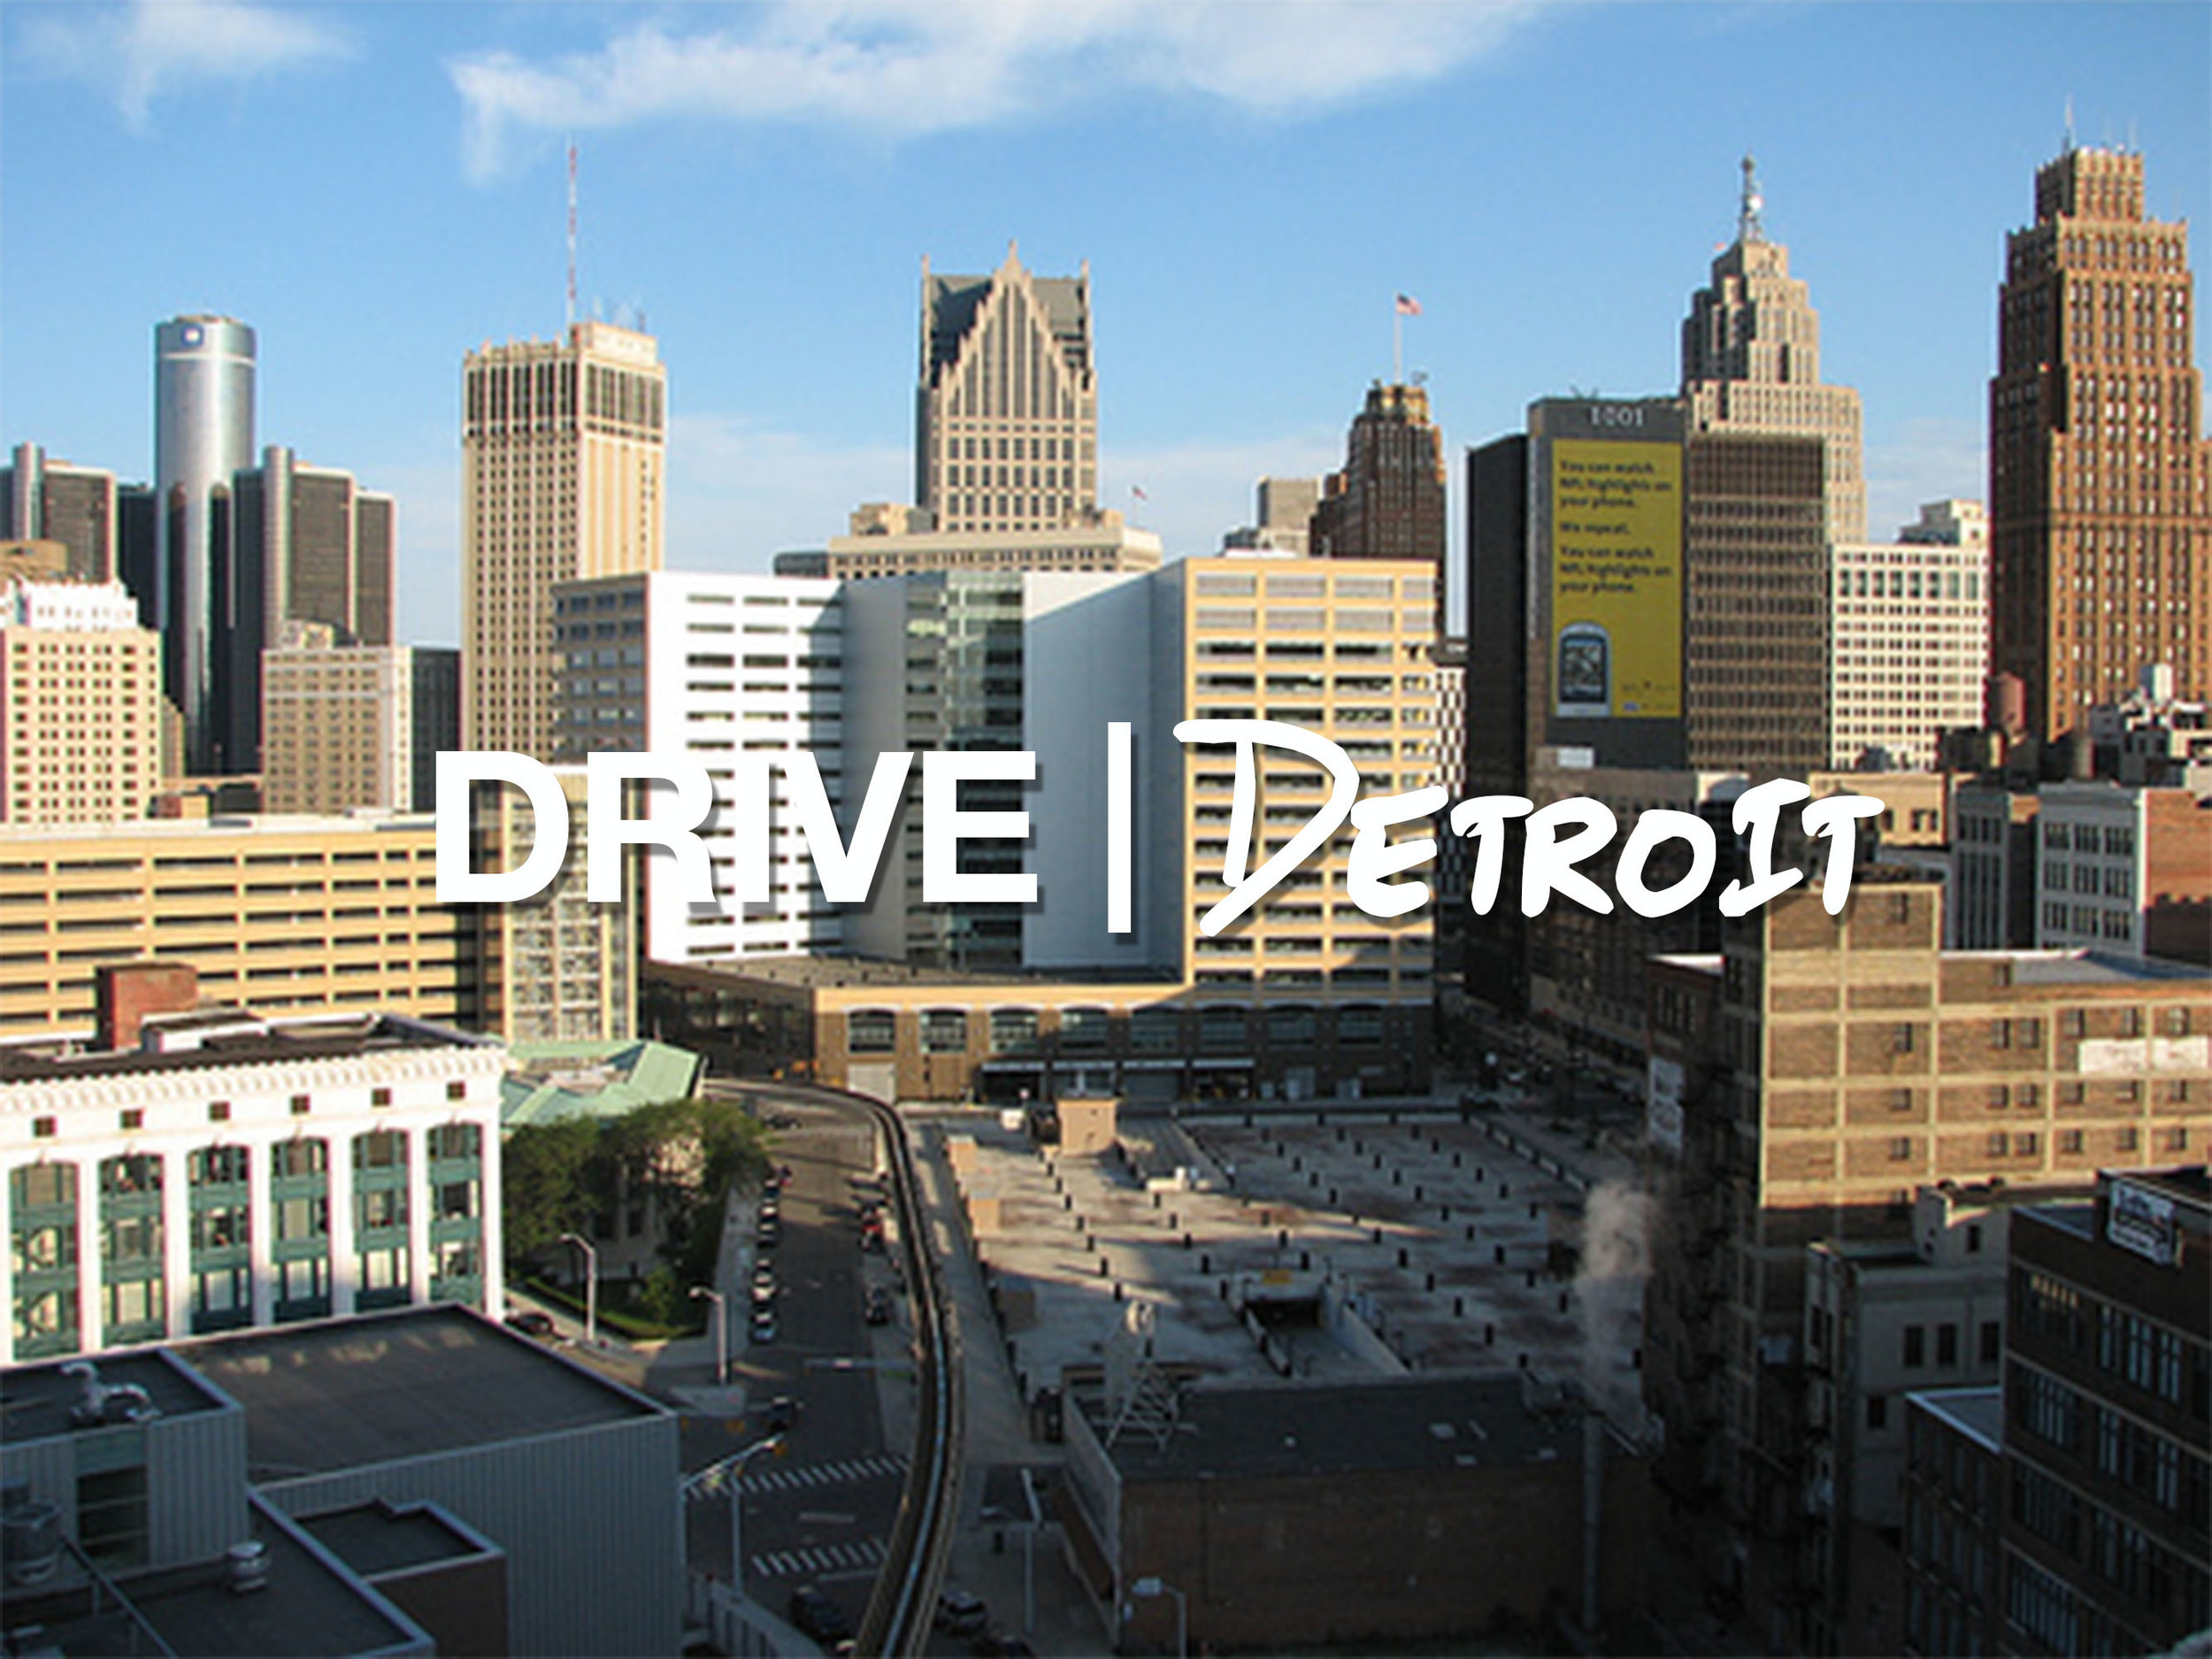 drive_titles_detroit.jpg